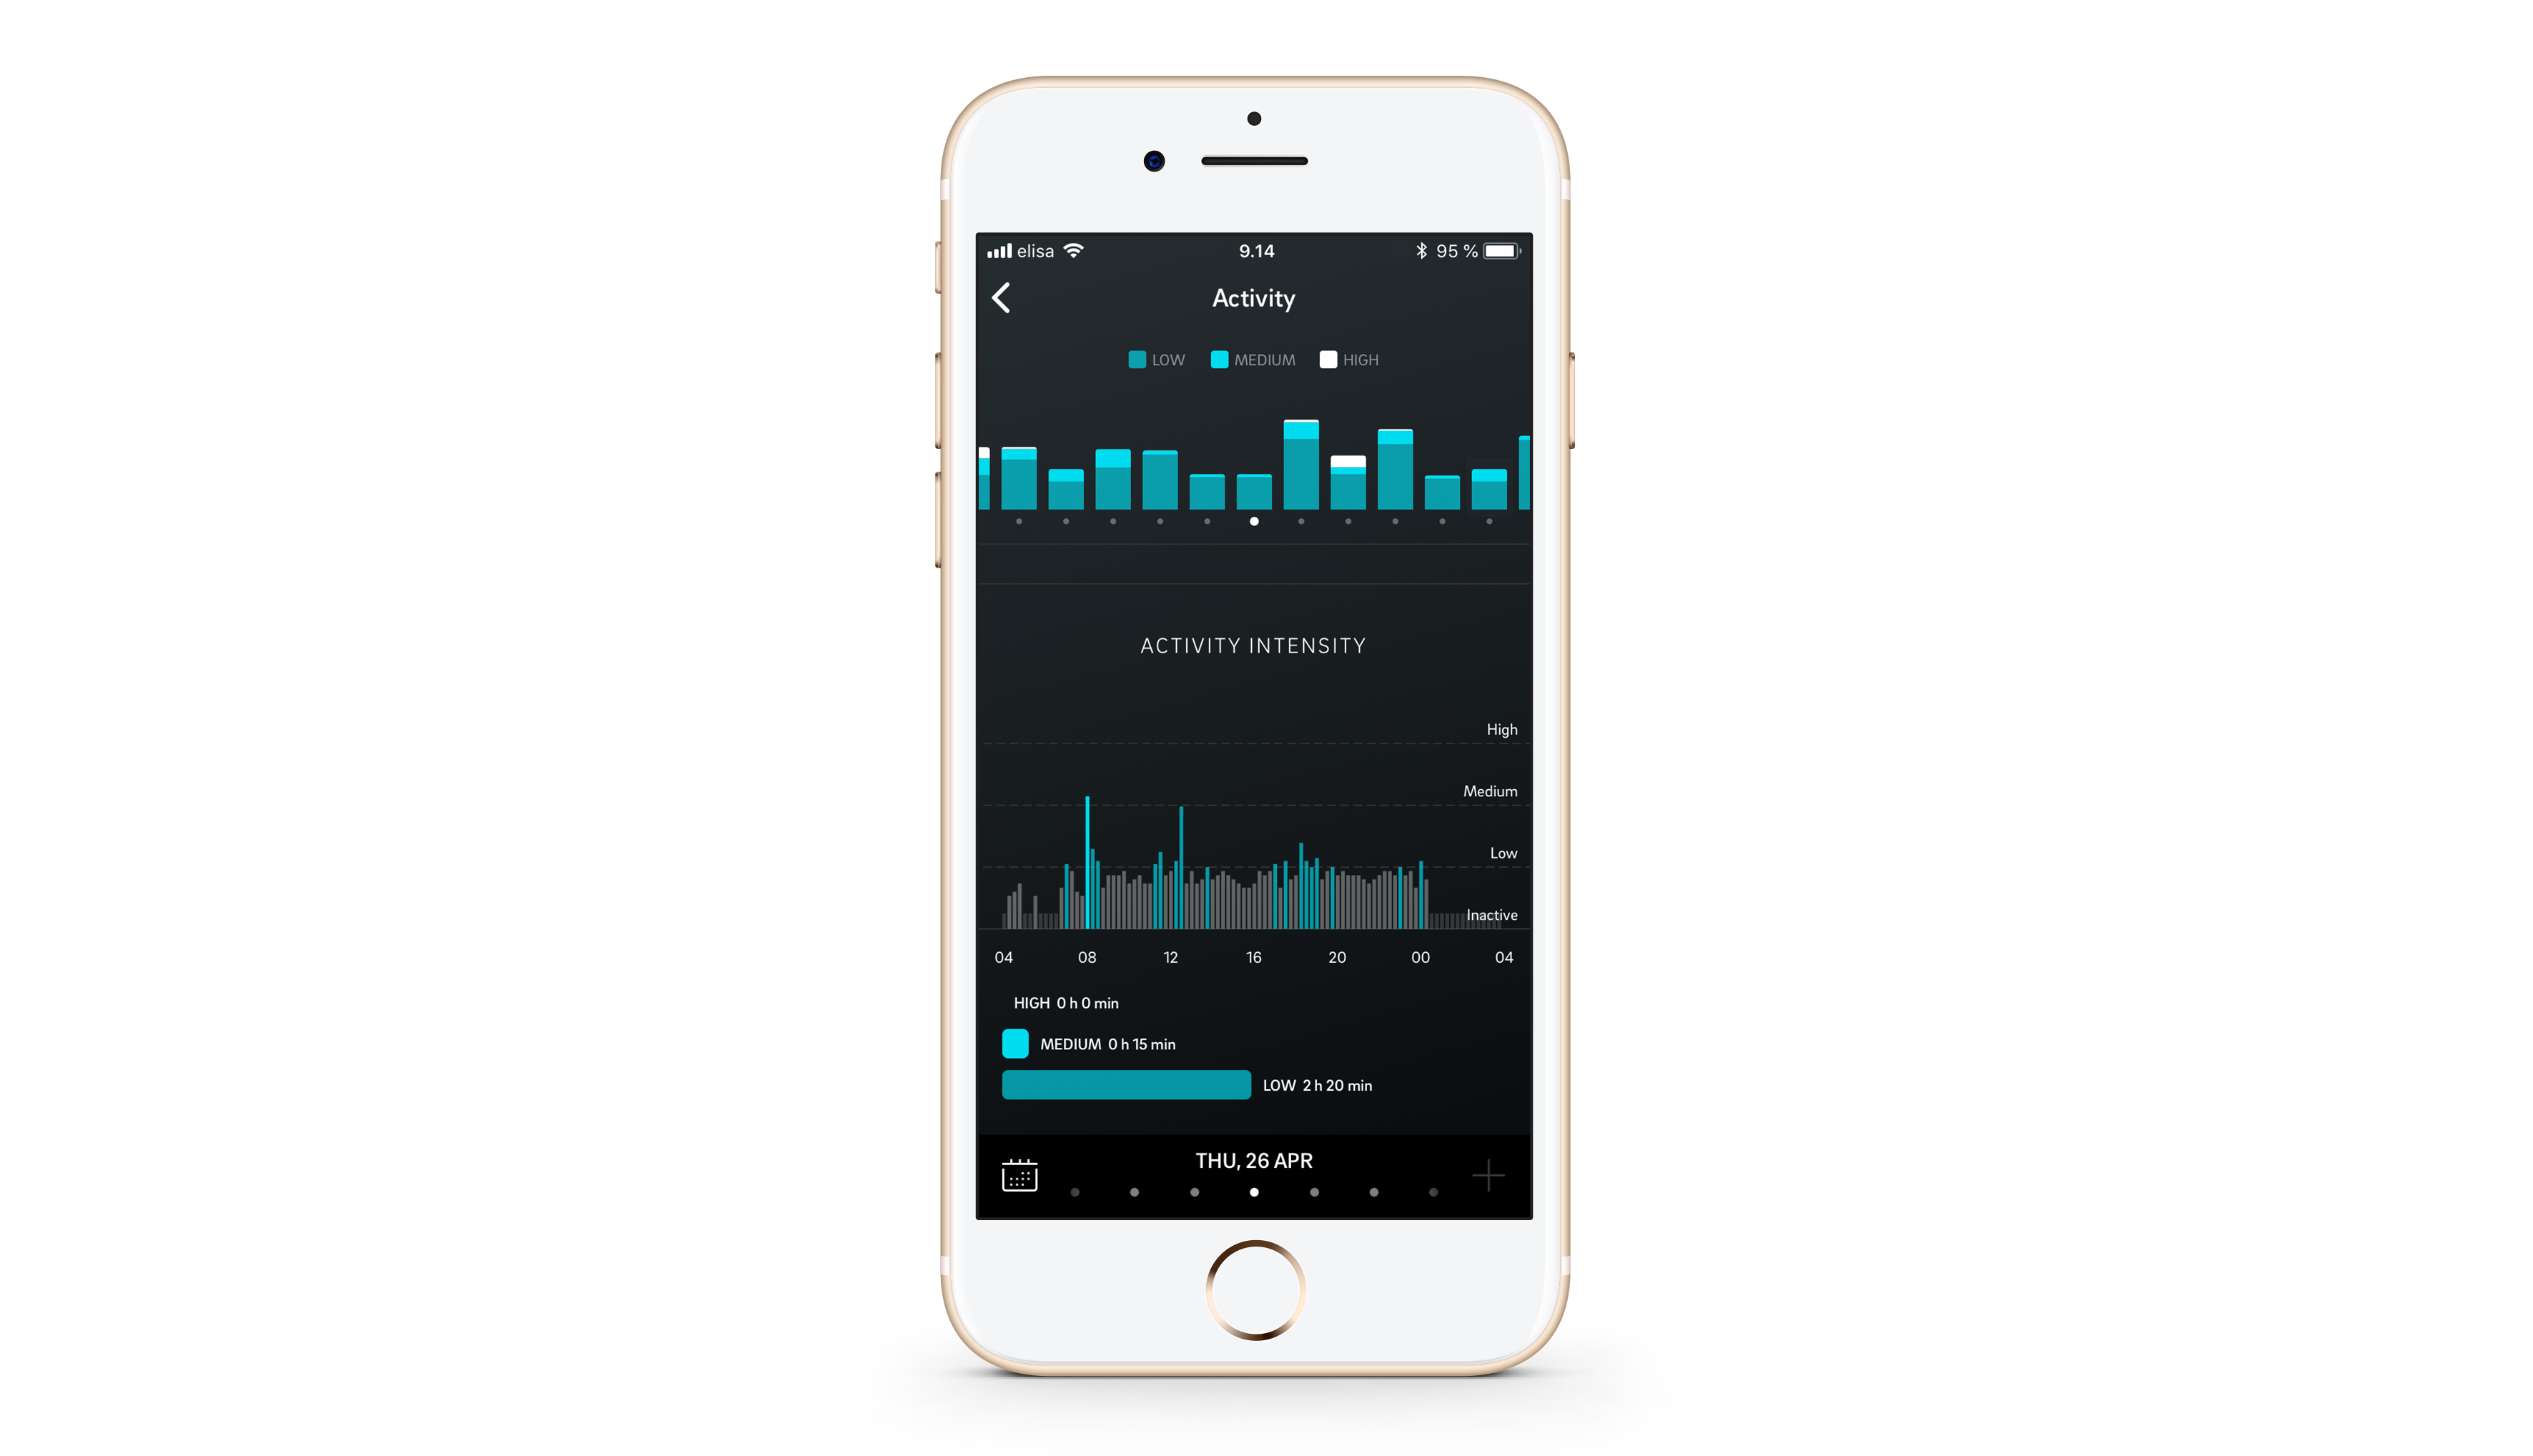 The Oura app